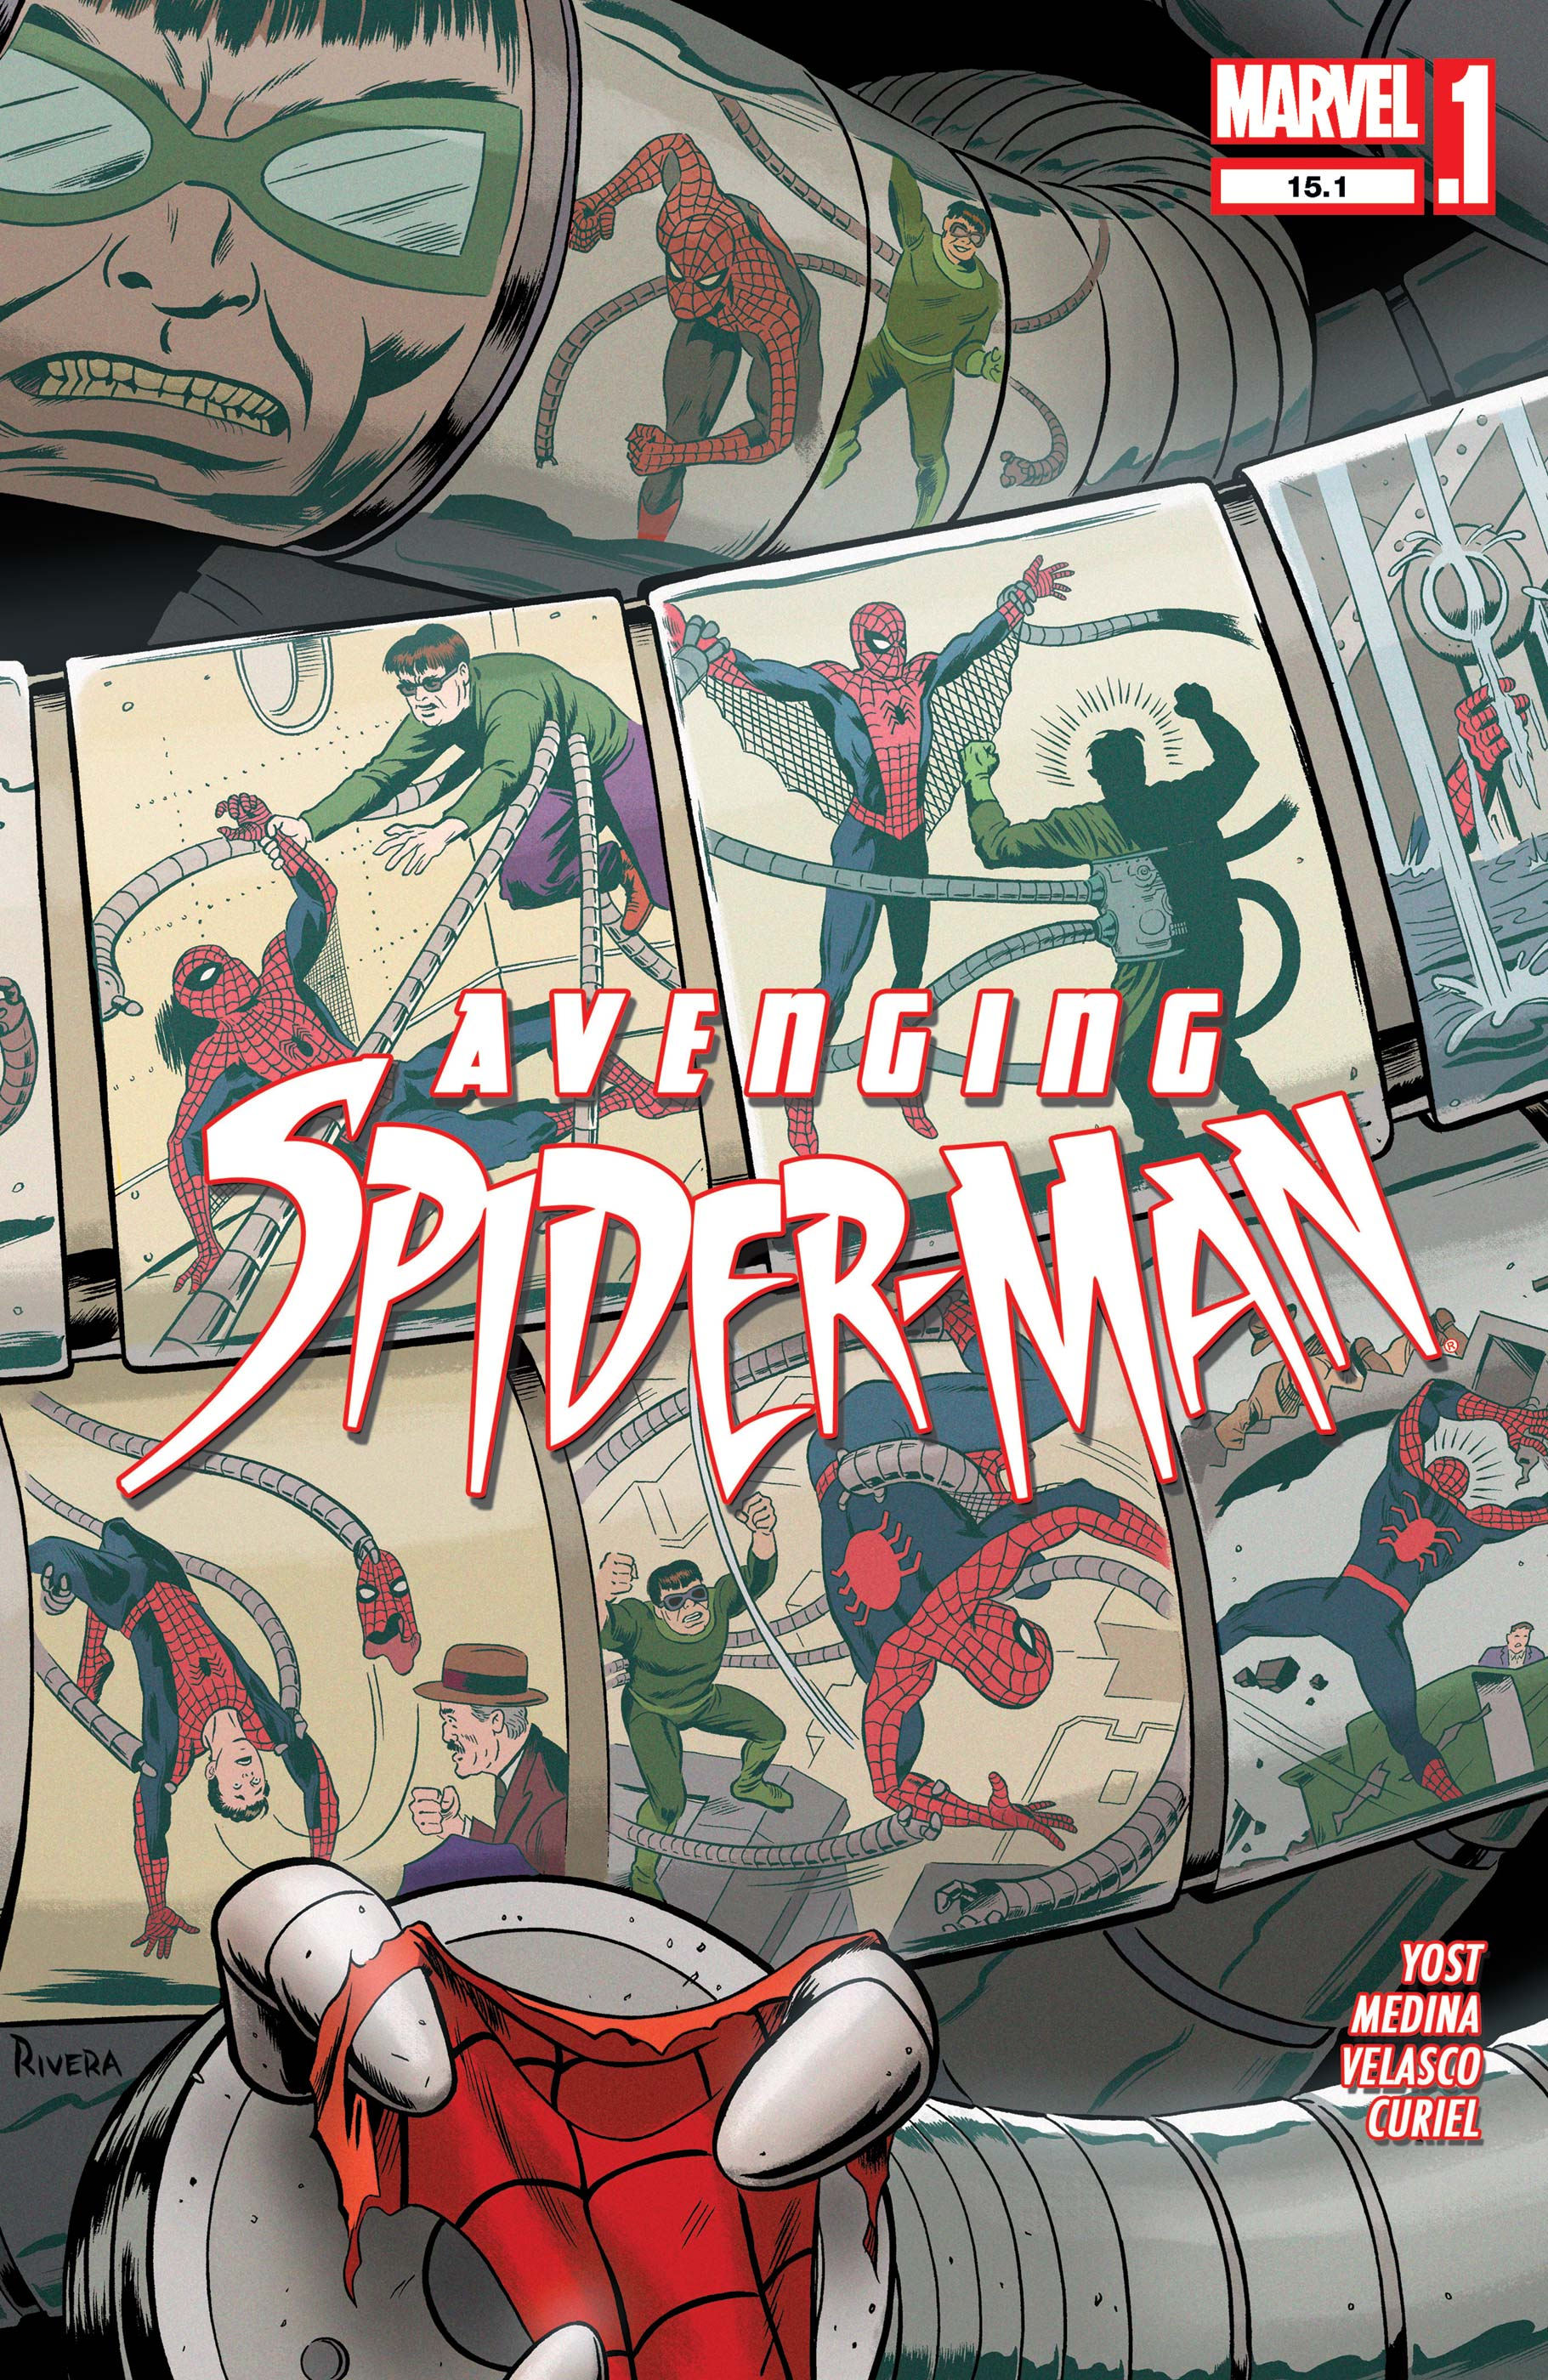 Avenging Spider-Man (2011) #15.1